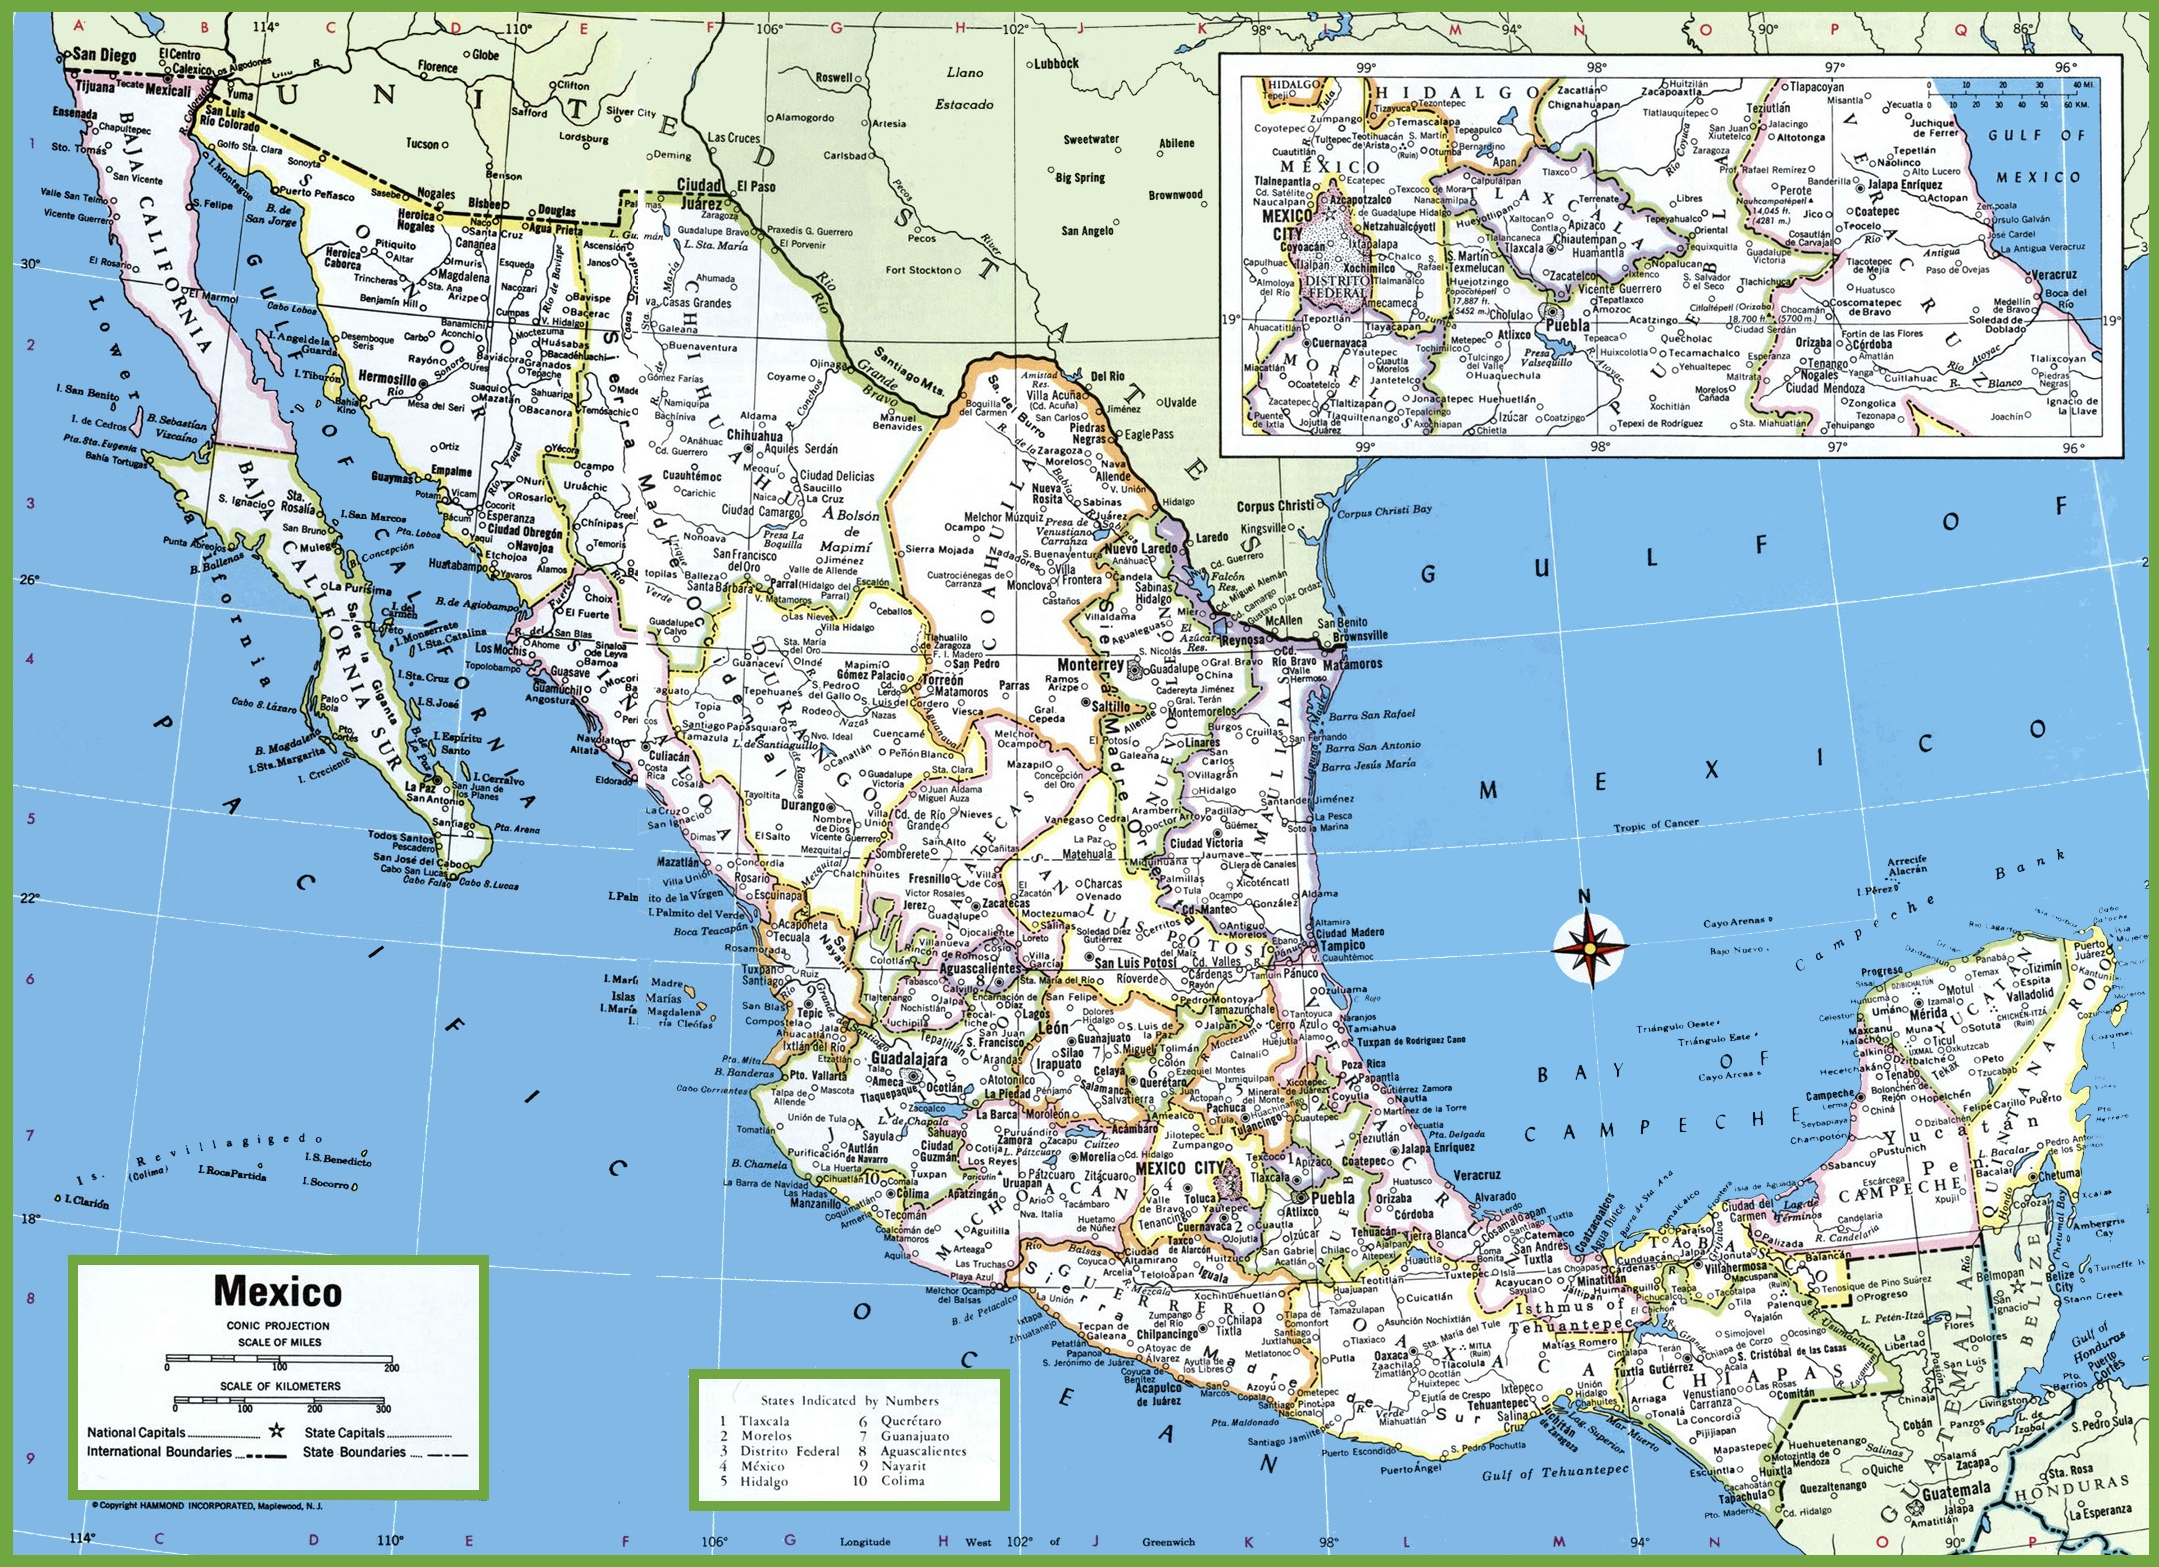 Mexico Cities Map Large detailed map of Mexico with cities and towns